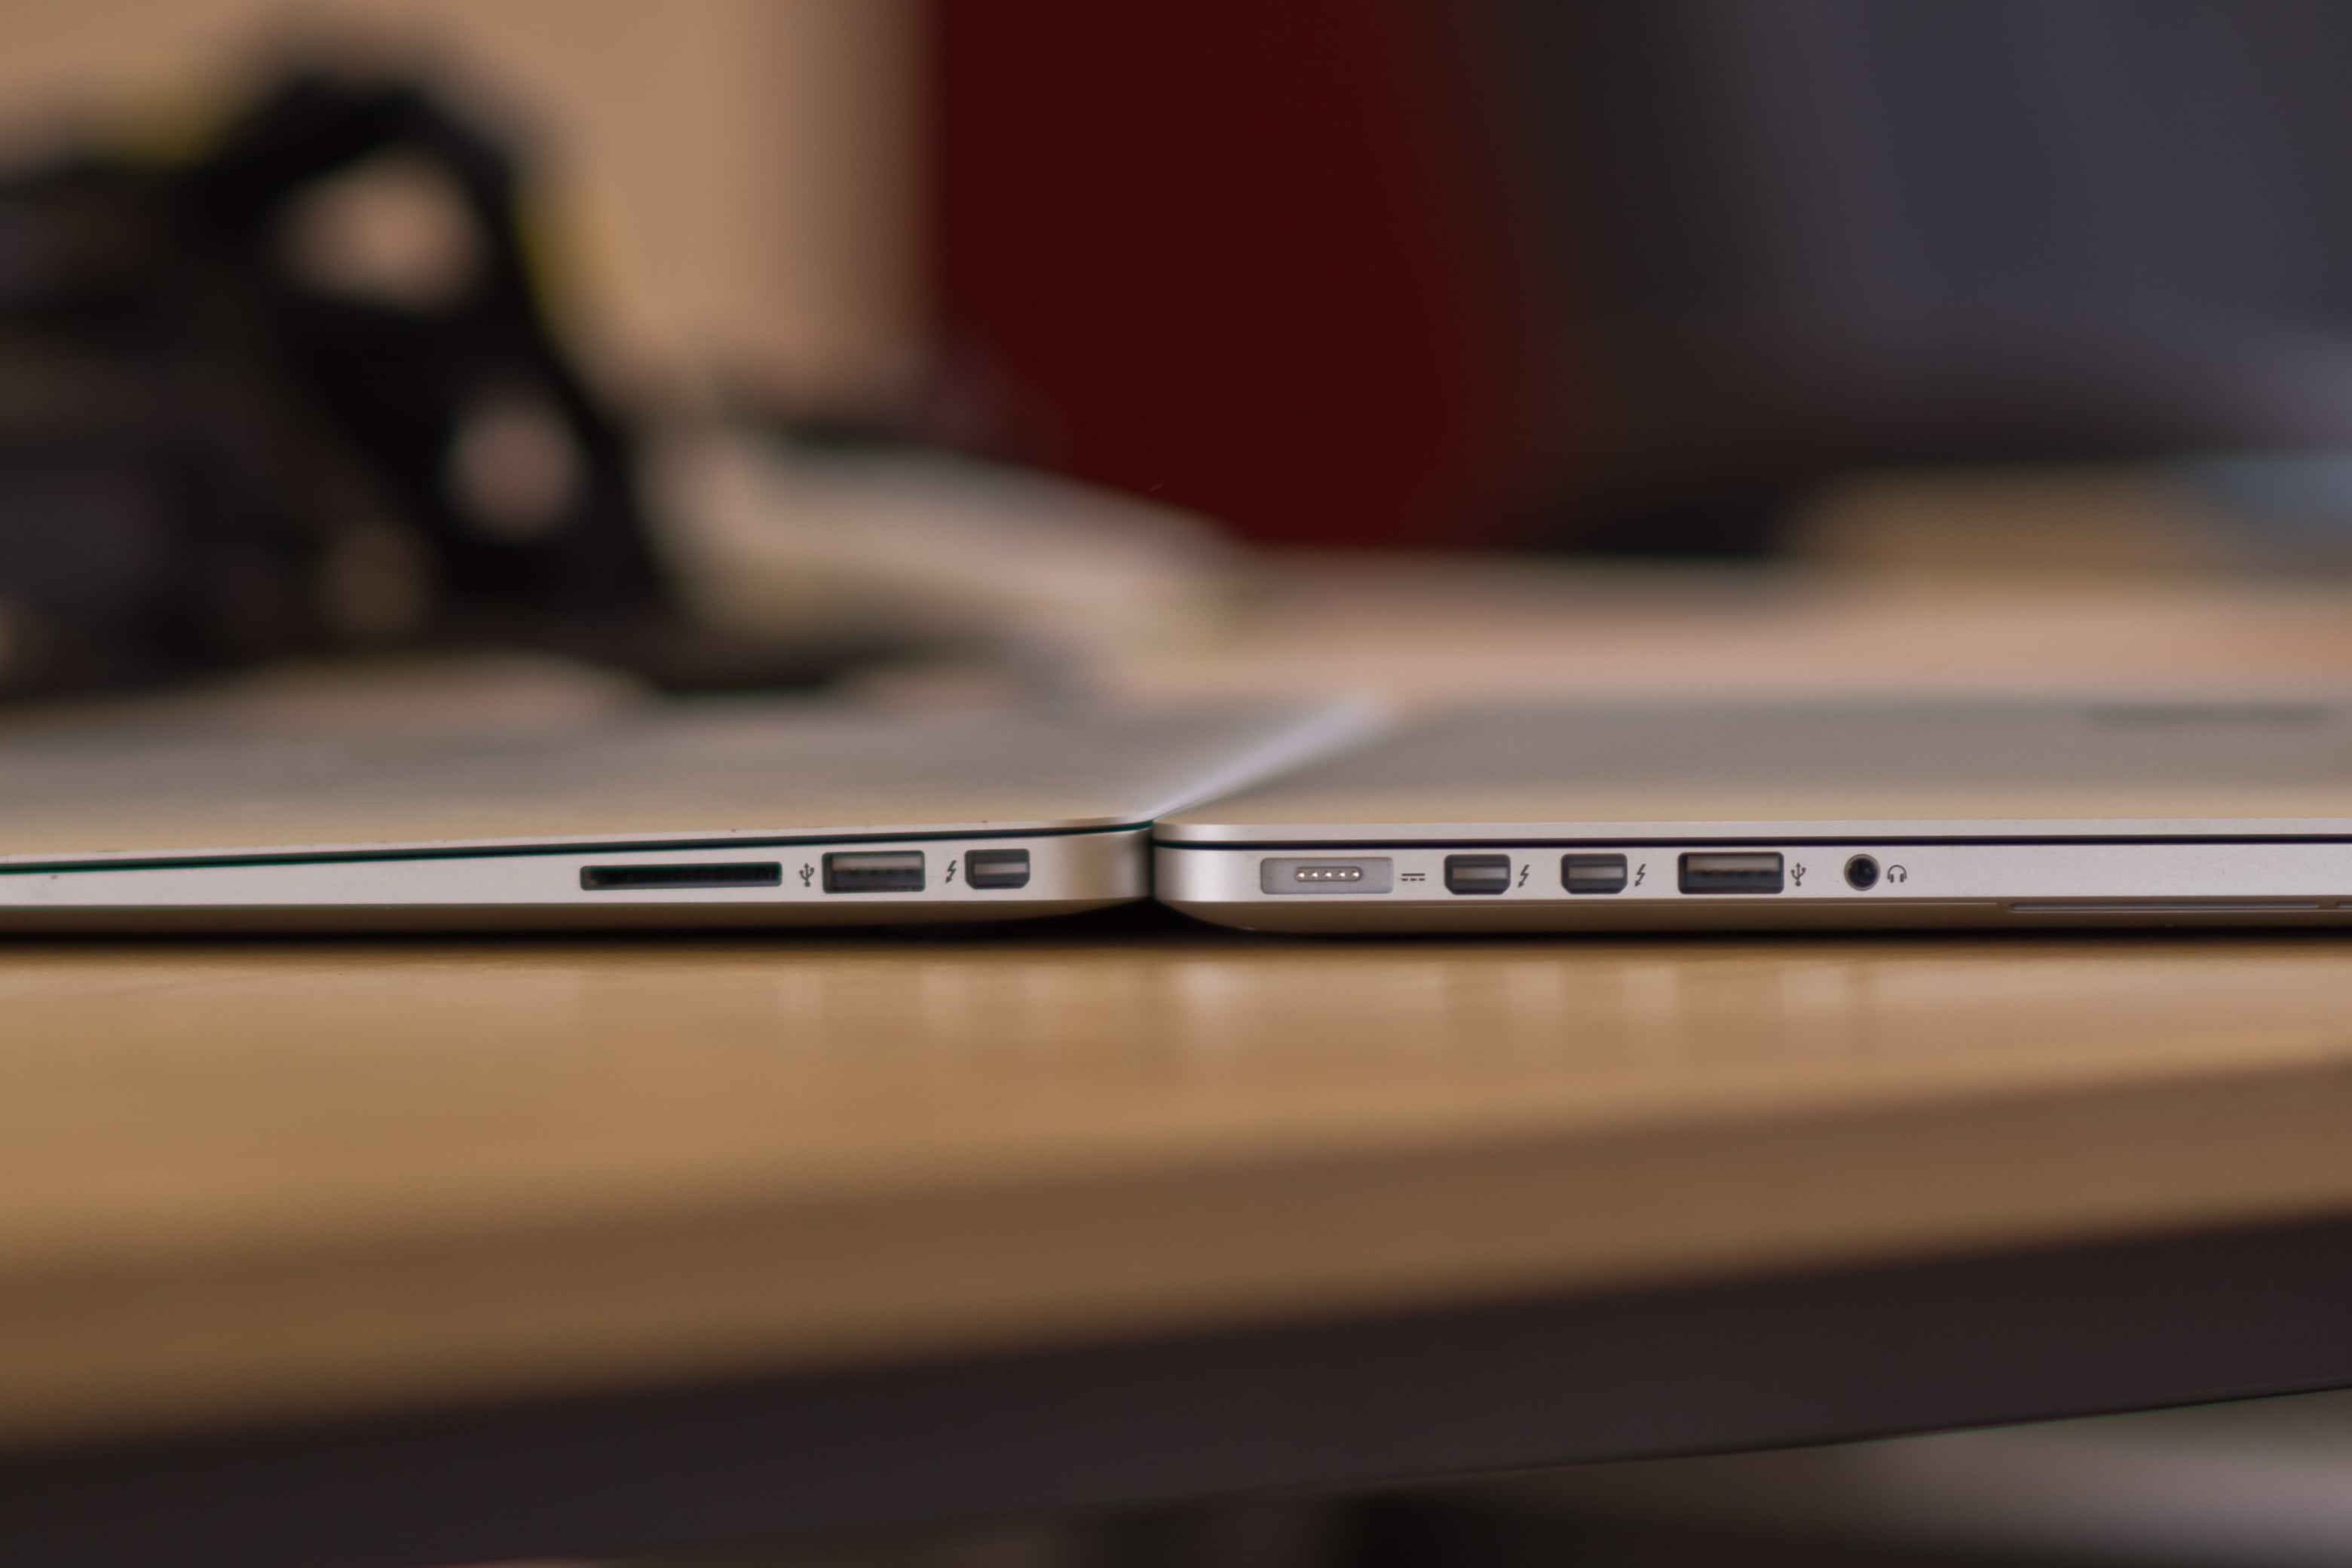 A closer look at the MacBook Pro with Retina Display's thickness compared to a MacBook Air.